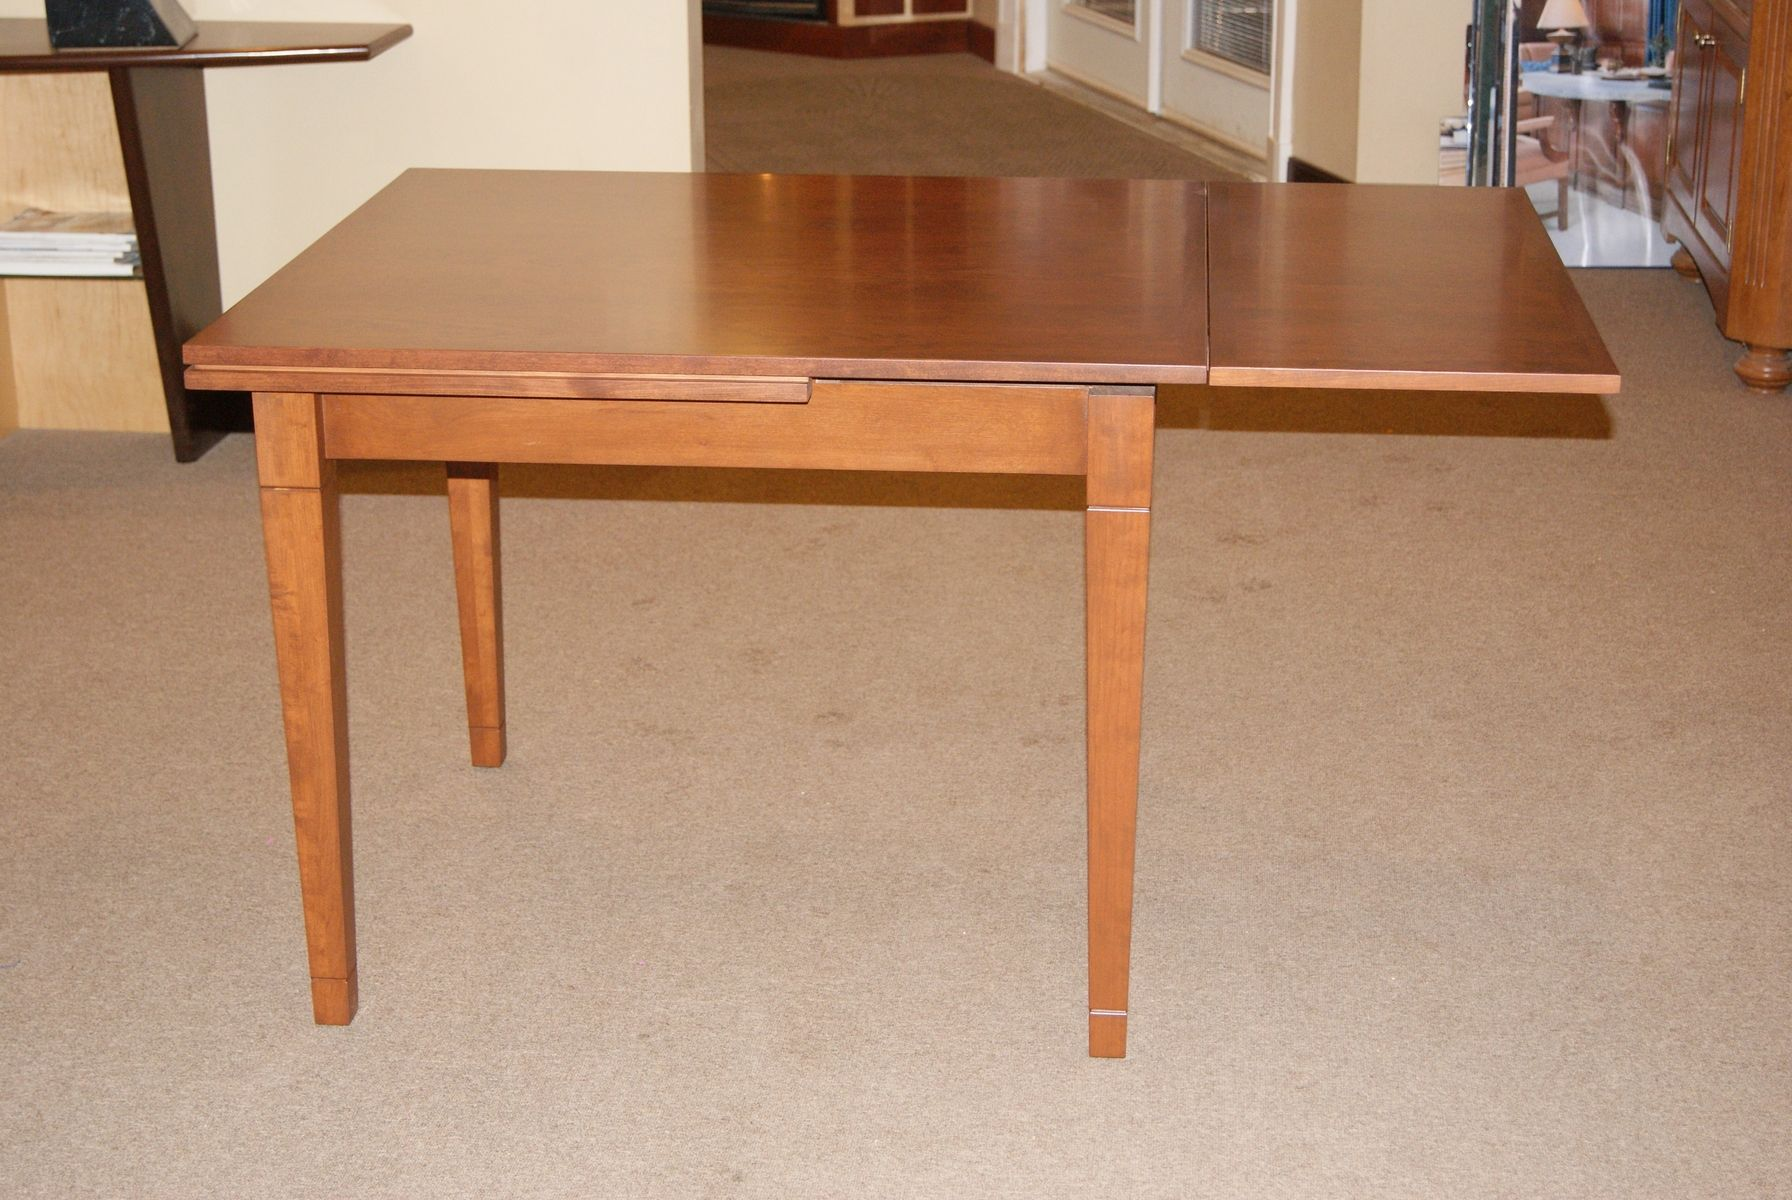 Dining Room Table With Pull Out Leaves Gallery Dining